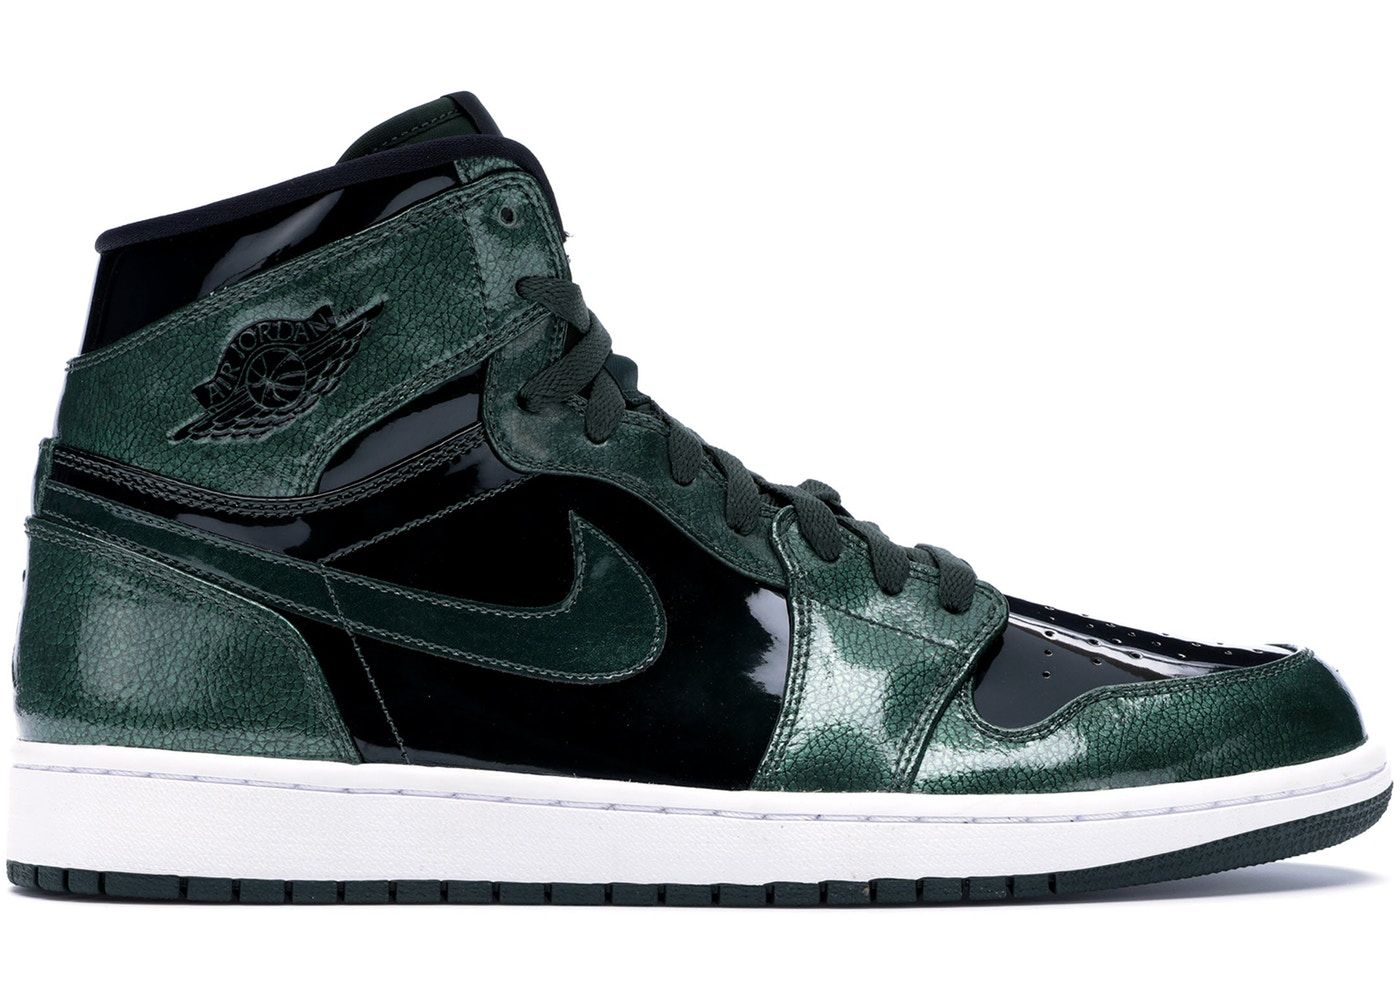 f67d96eb Check out the Jordan 1 Retro Grove Green available on StockX Air Force  Sneakers, Nike